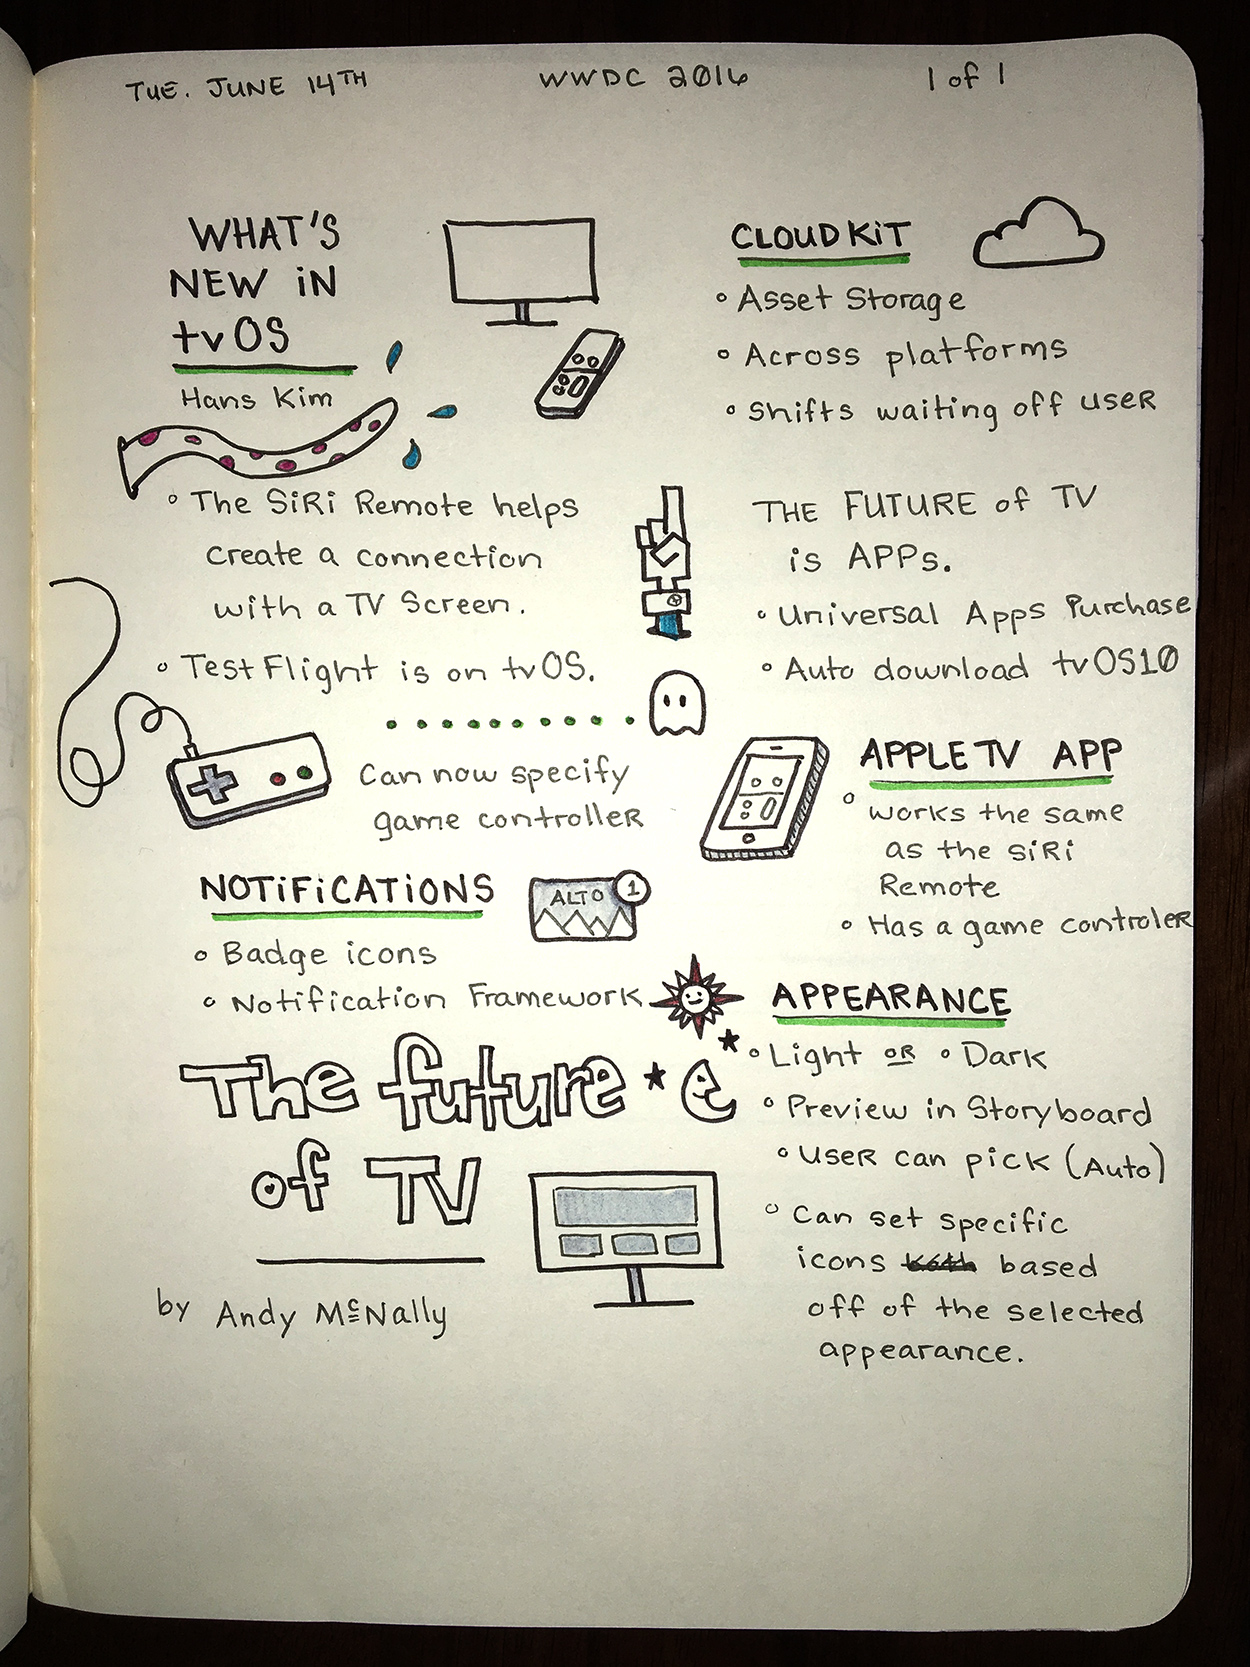 WWDC sketchnotes - What's New in tvOS